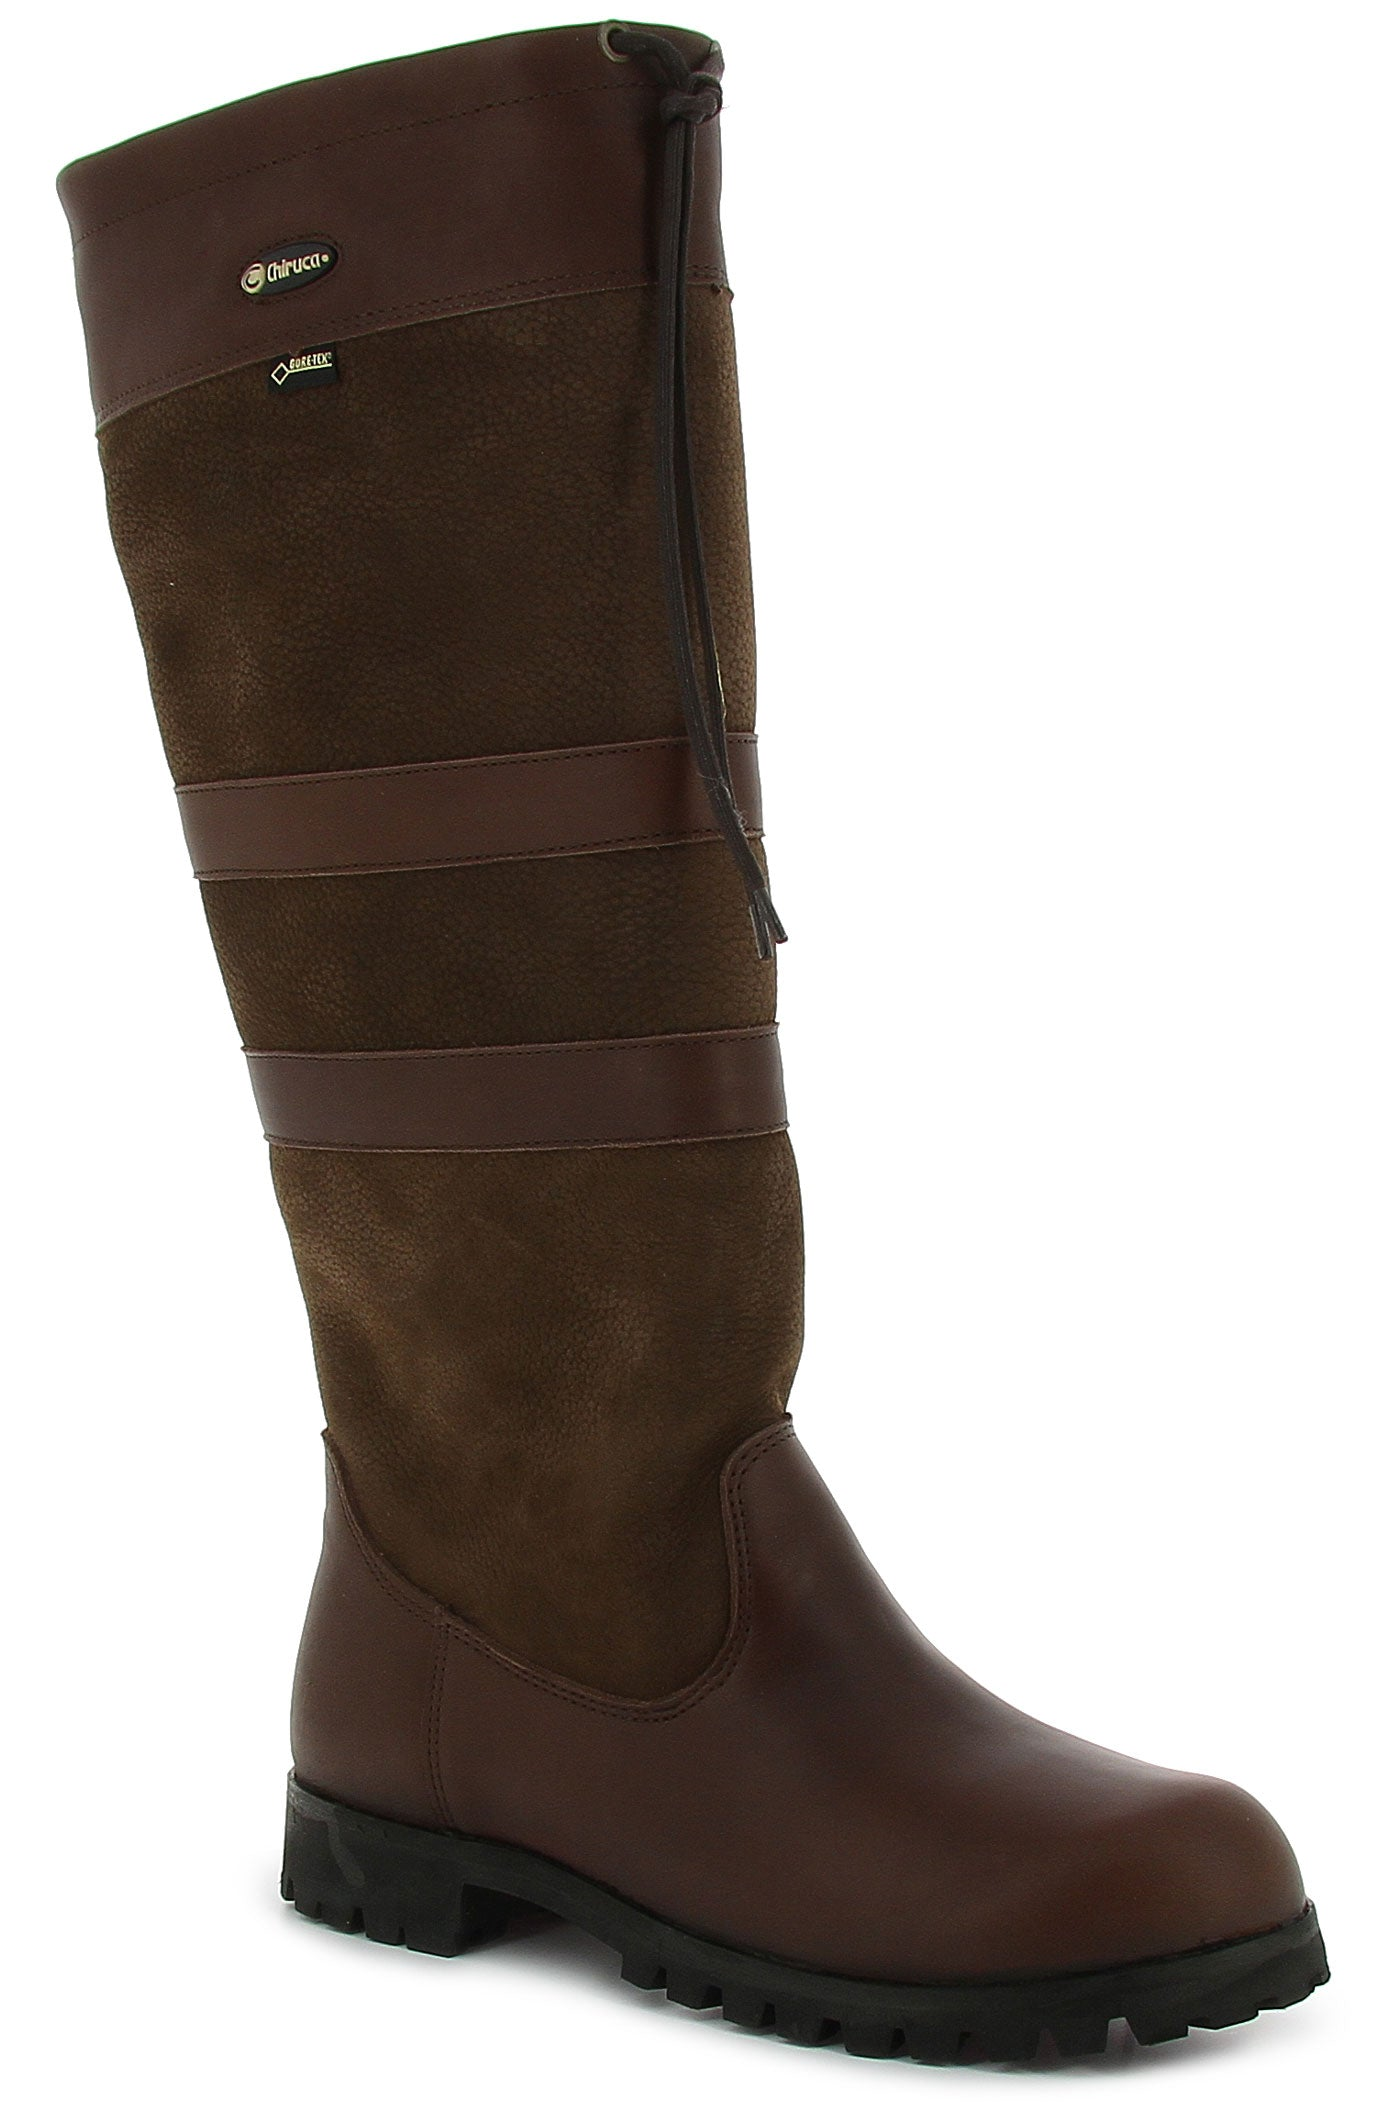 f9278e85f7d Chiruca Chelsea Gore-Tex Lined Leather Boot - Wide Fit – Hollands ...